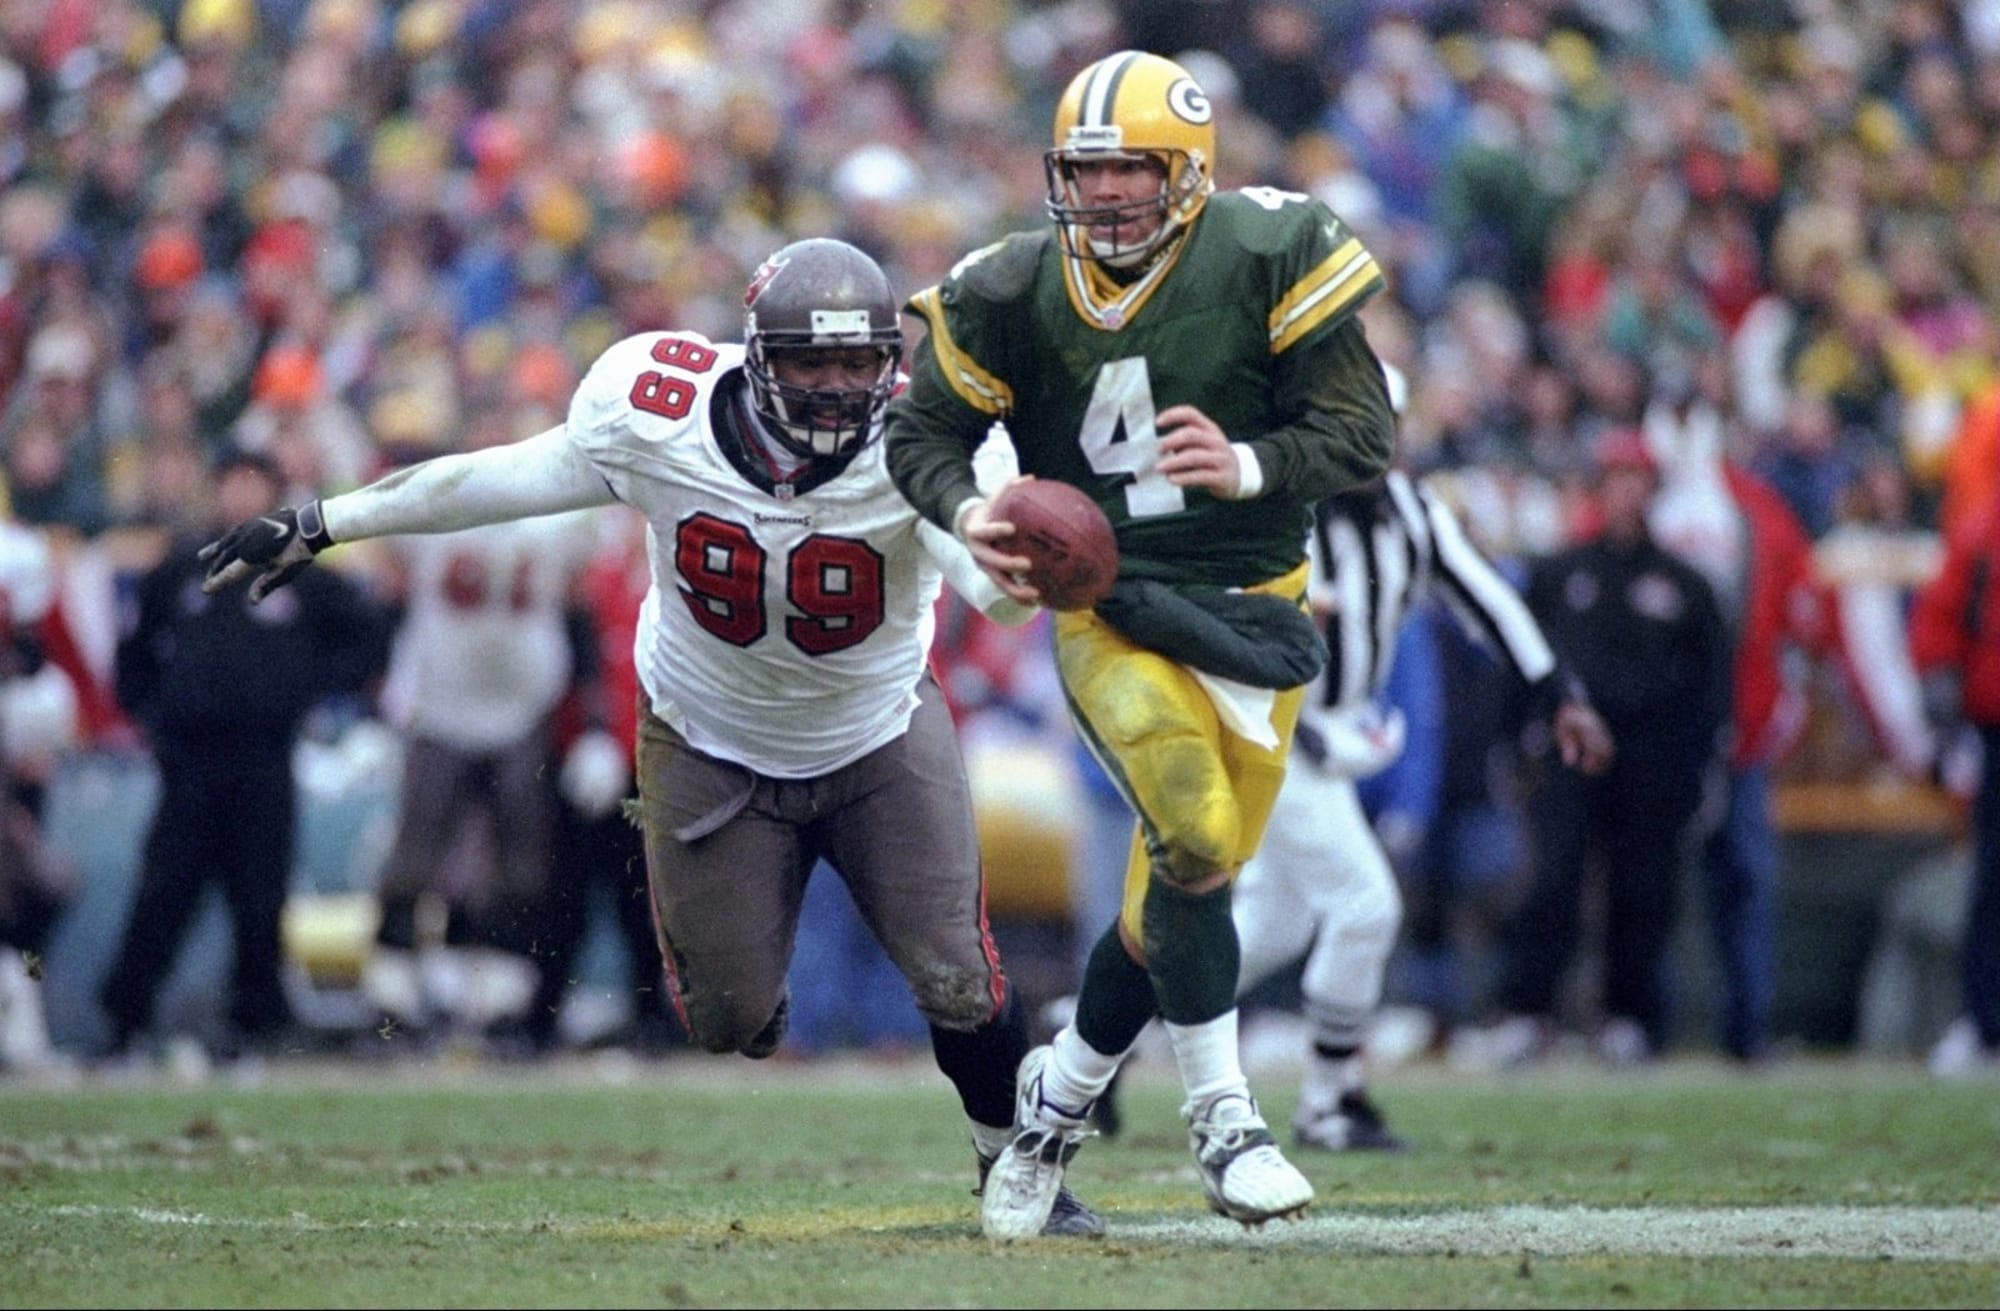 Brett Favre Warren Sapp Packers